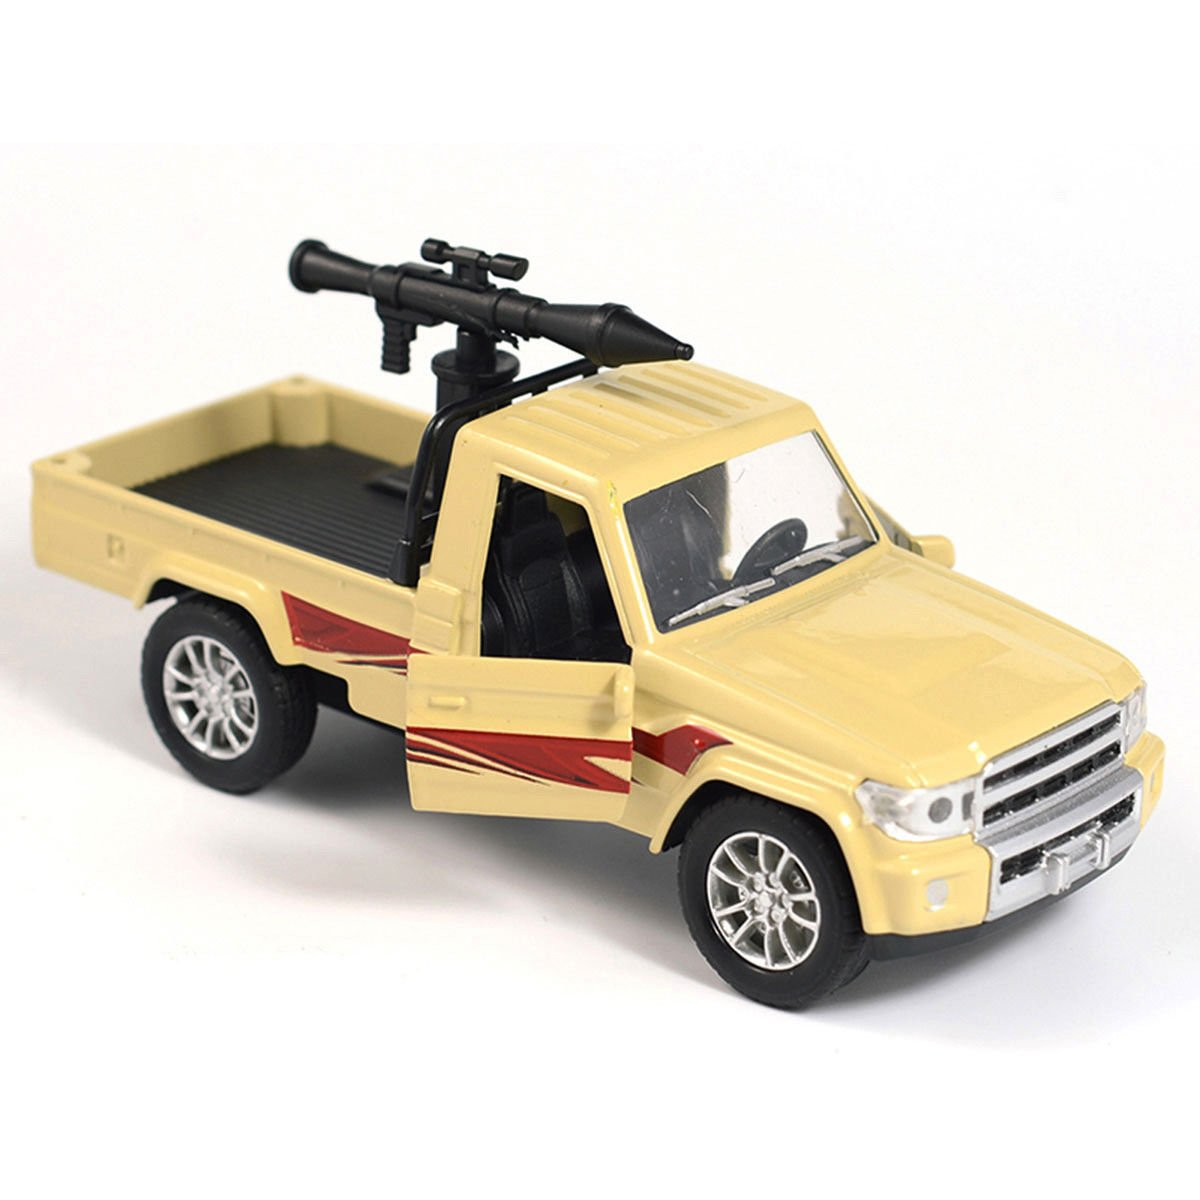 1:28 Military Pickup Truck w/ Antiaircraft Missile Diecast Car Model Toy Yellow